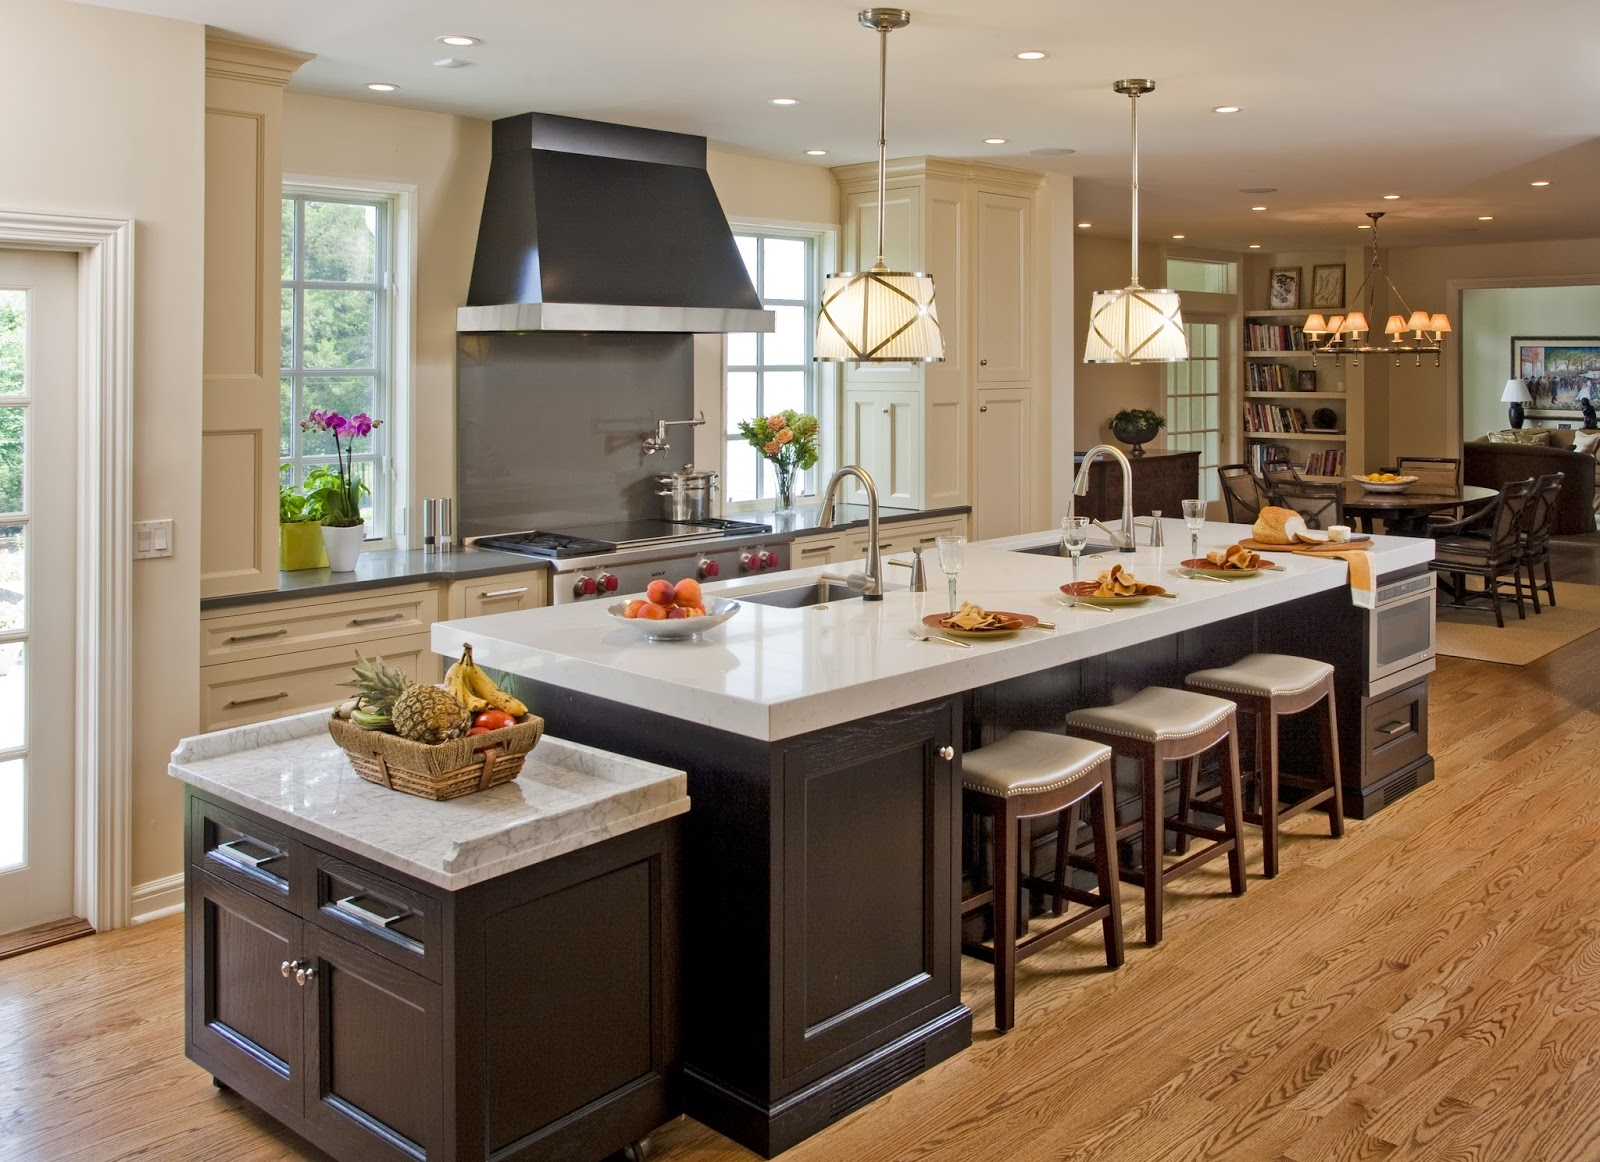 Superior Woodcraft, Inc. - Custom Cabinetry: Latest Houzz Project